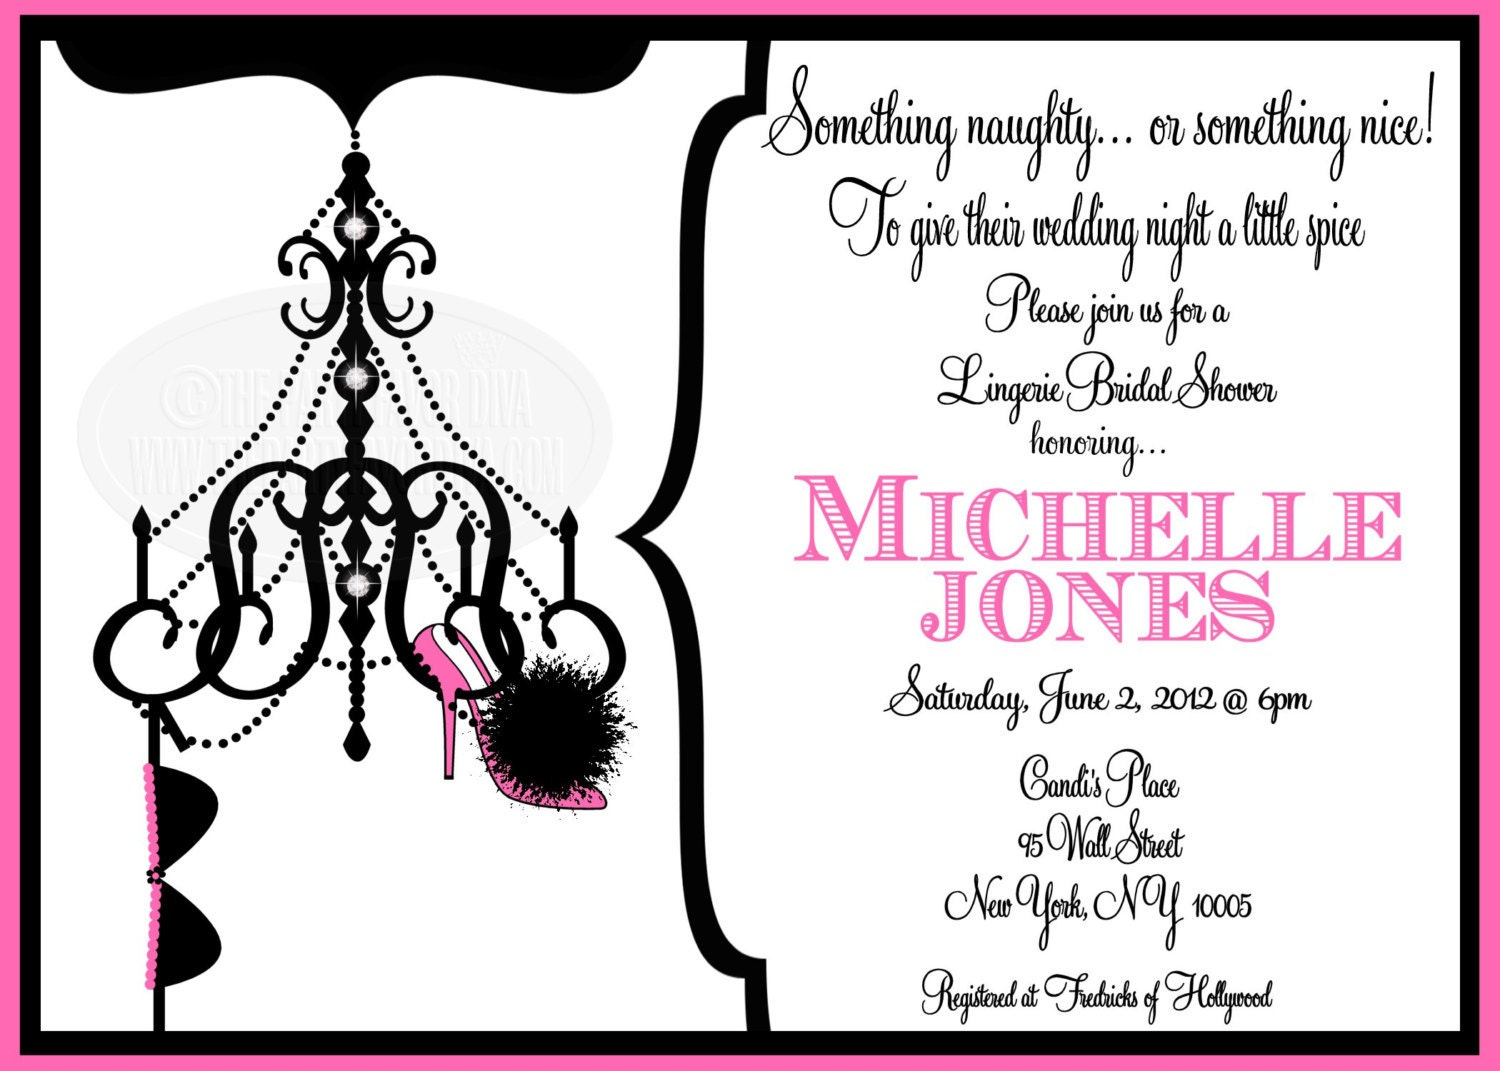 Items similar to chandelier lingerie bridal shower invitation on etsy for Lingerie bridal shower invitations